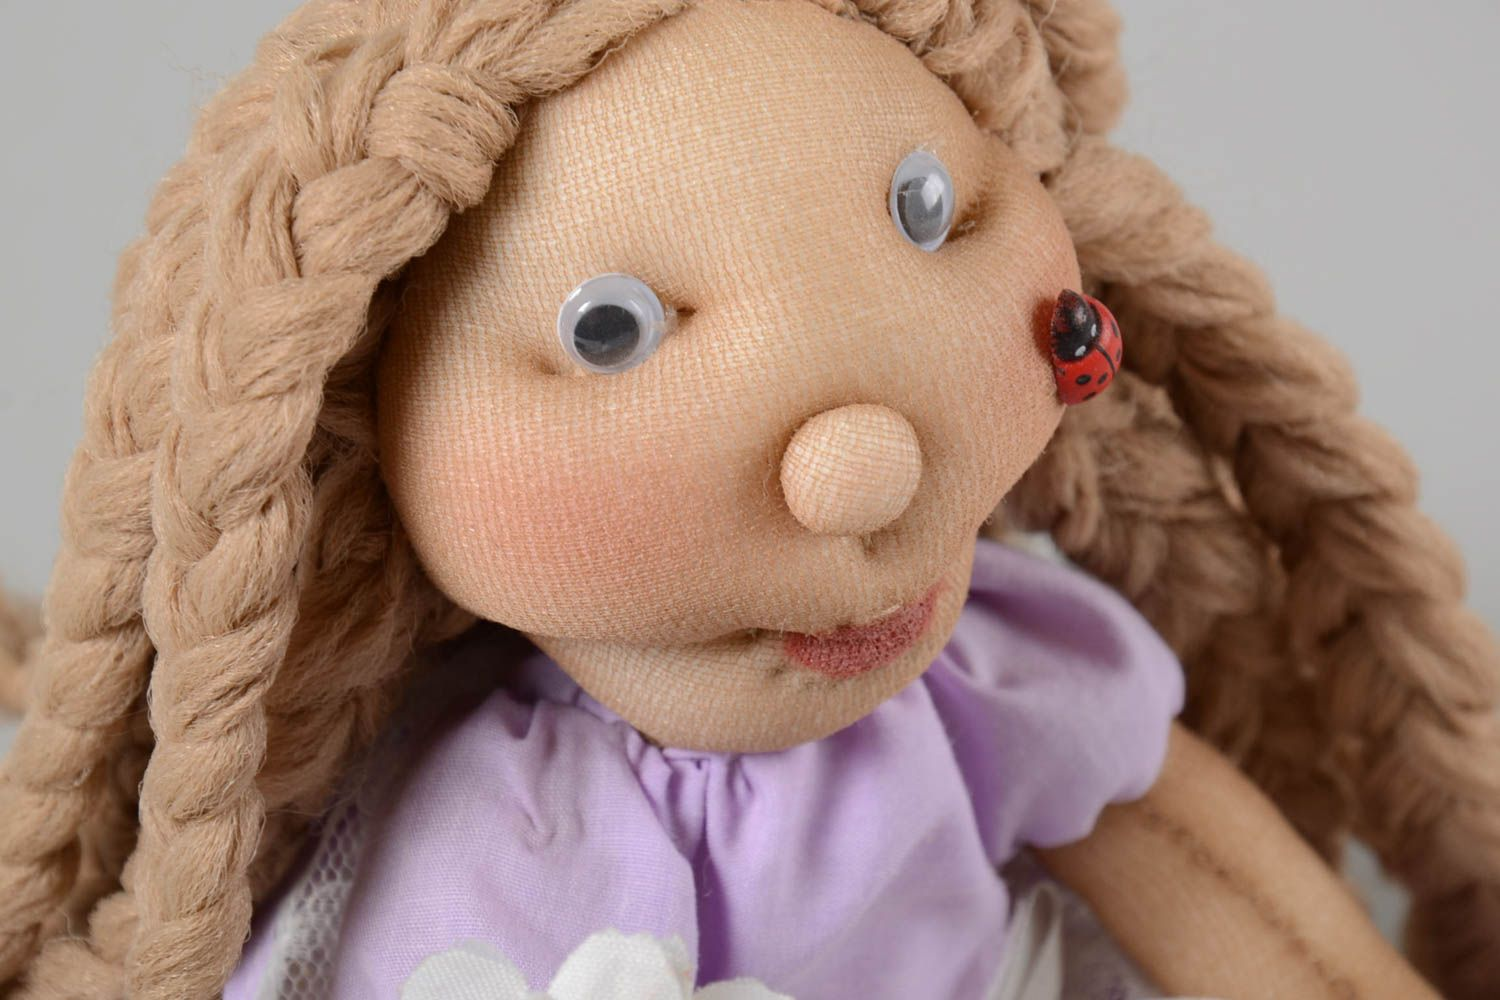 Unusual handmade soft toy stuffed toy rag doll house and home gifts for kids photo 3